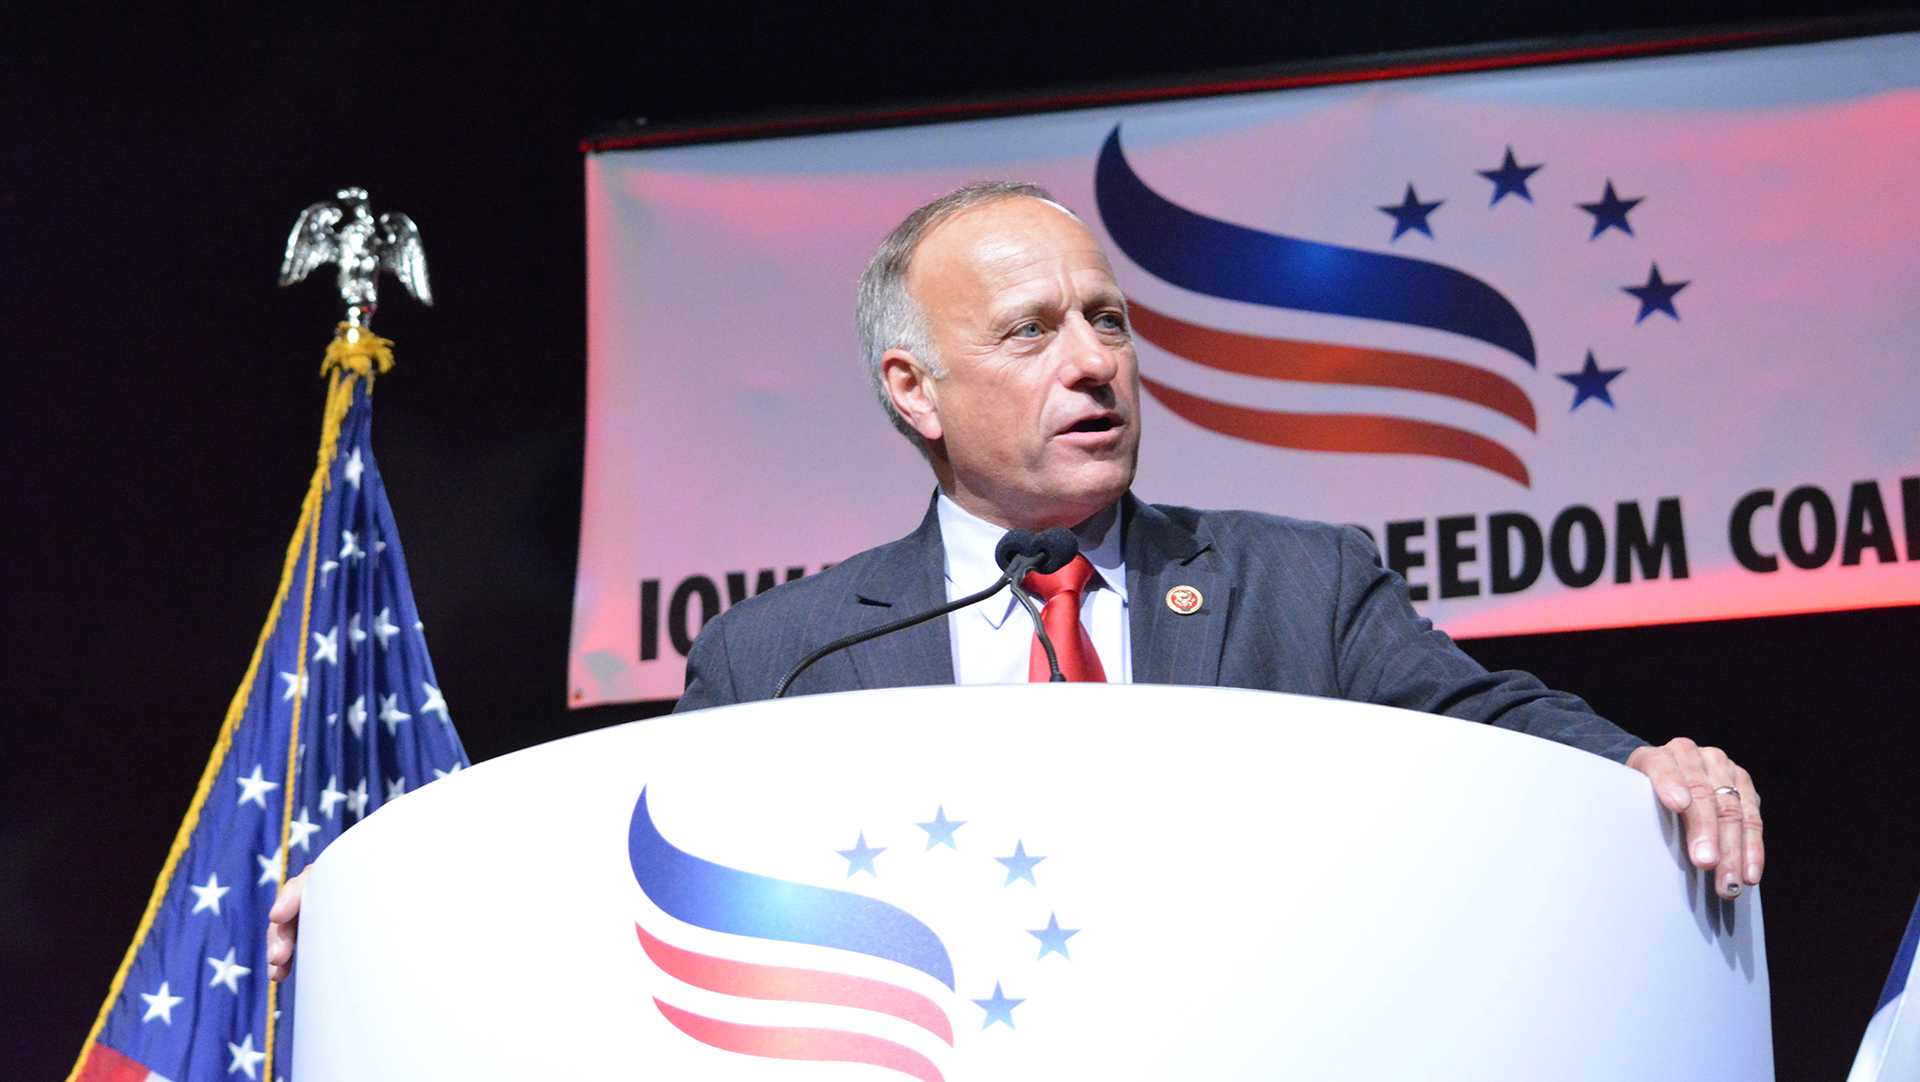 Column: Rep. Steve King retweets Nazi sympathizer, Iowa GOP unconcerned